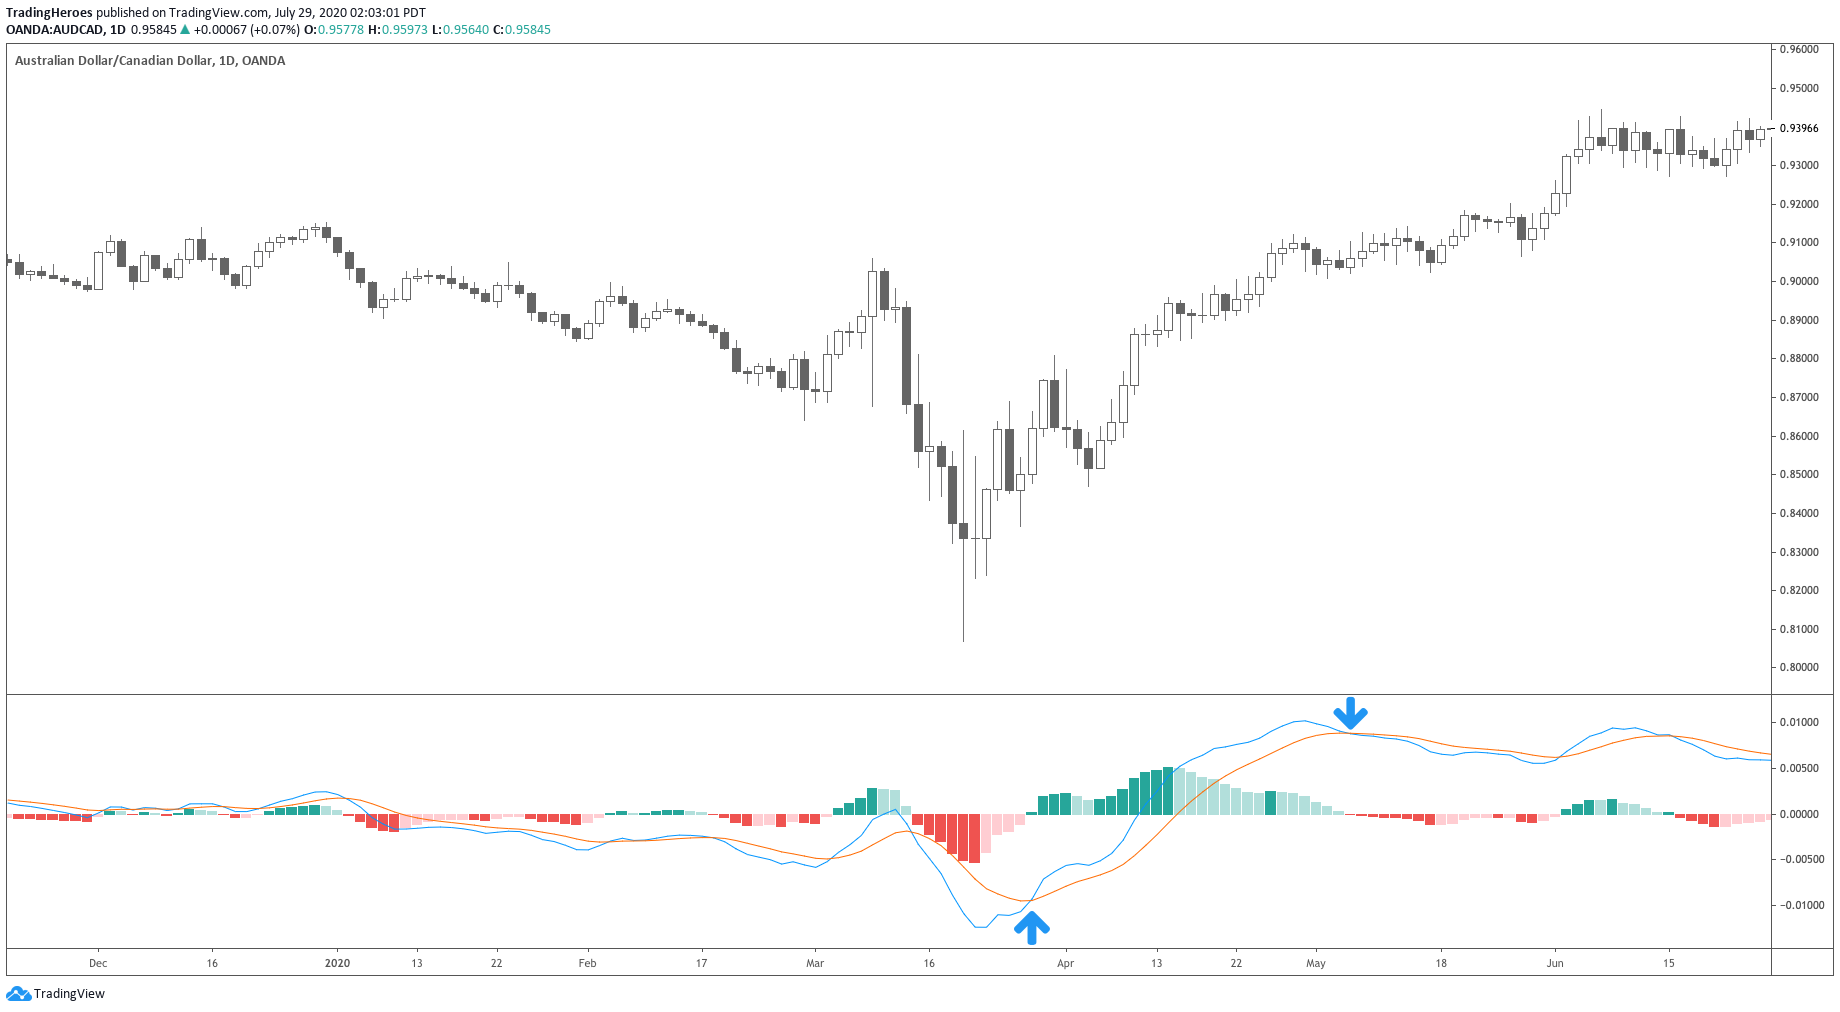 MACD crossover strategy